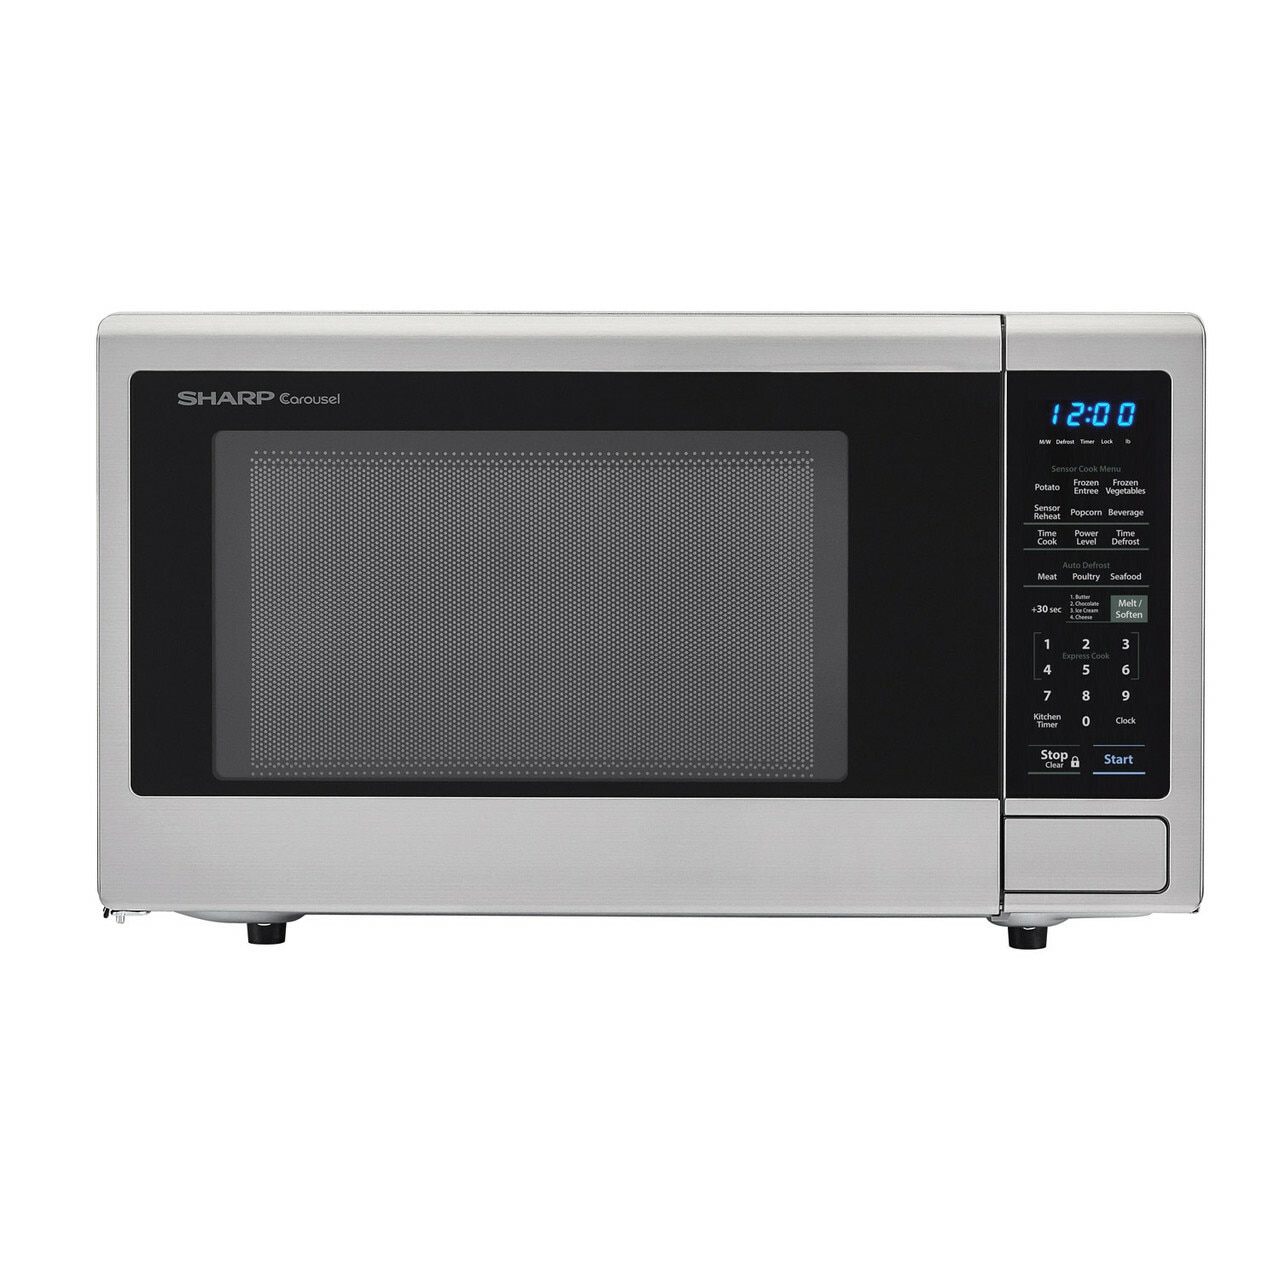 1.4 cu. ft. Sharp Stainless Steel Countertop Microwave (SMC1442CS)